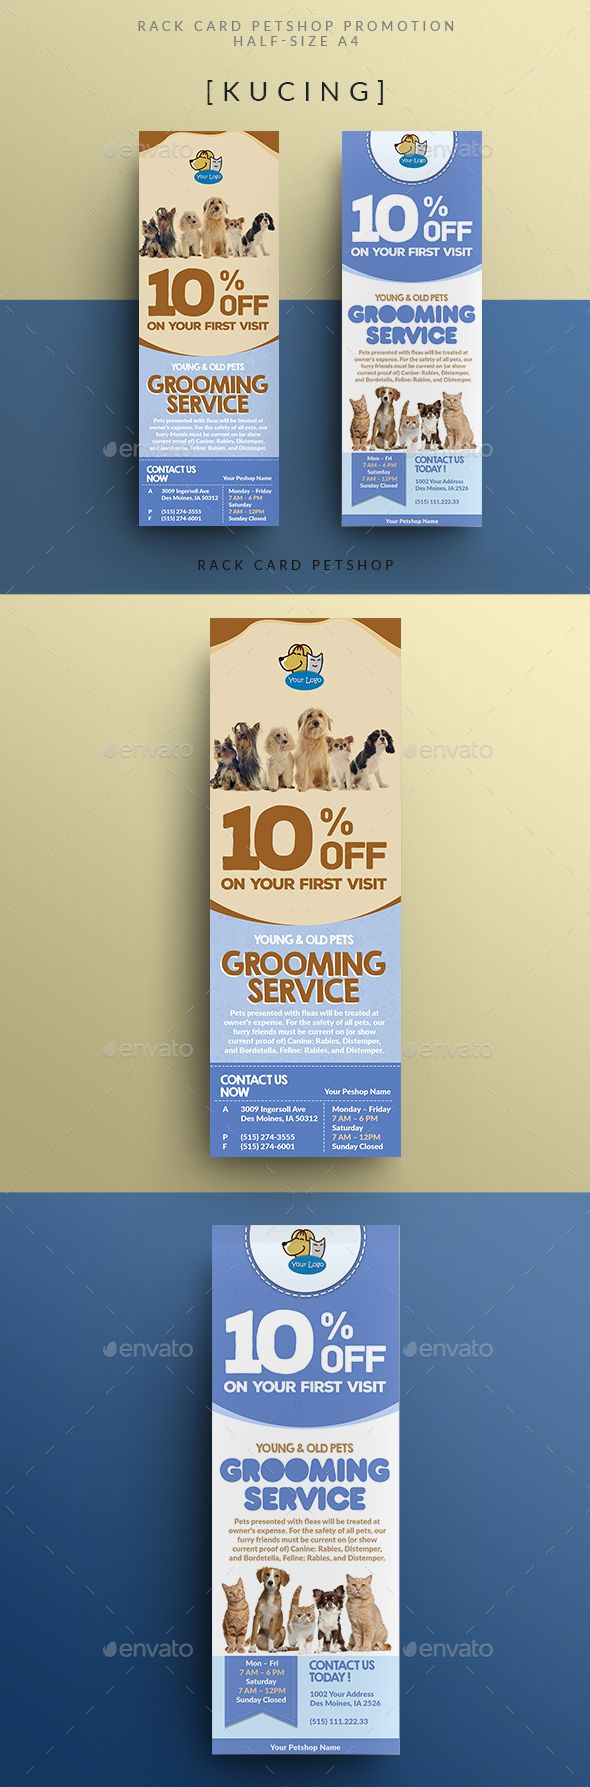 Rack Card Pet Shop Promotion Miscellaneous Events Advertising